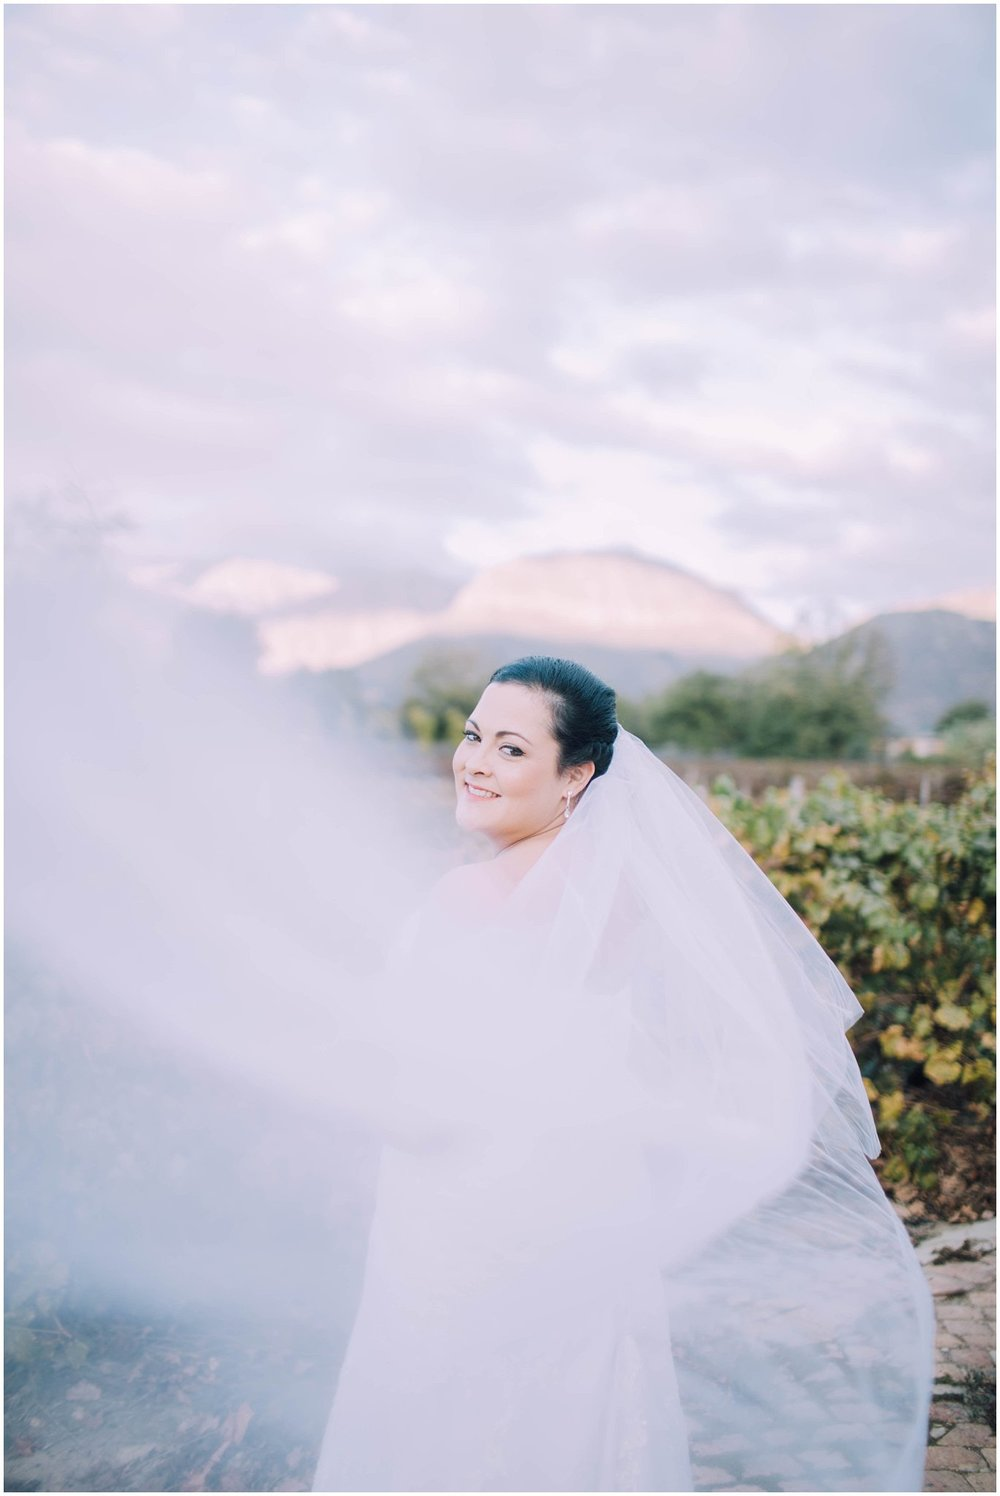 Ronel Kruger Cape Town Wedding and Lifestyle Photographer_2644.jpg